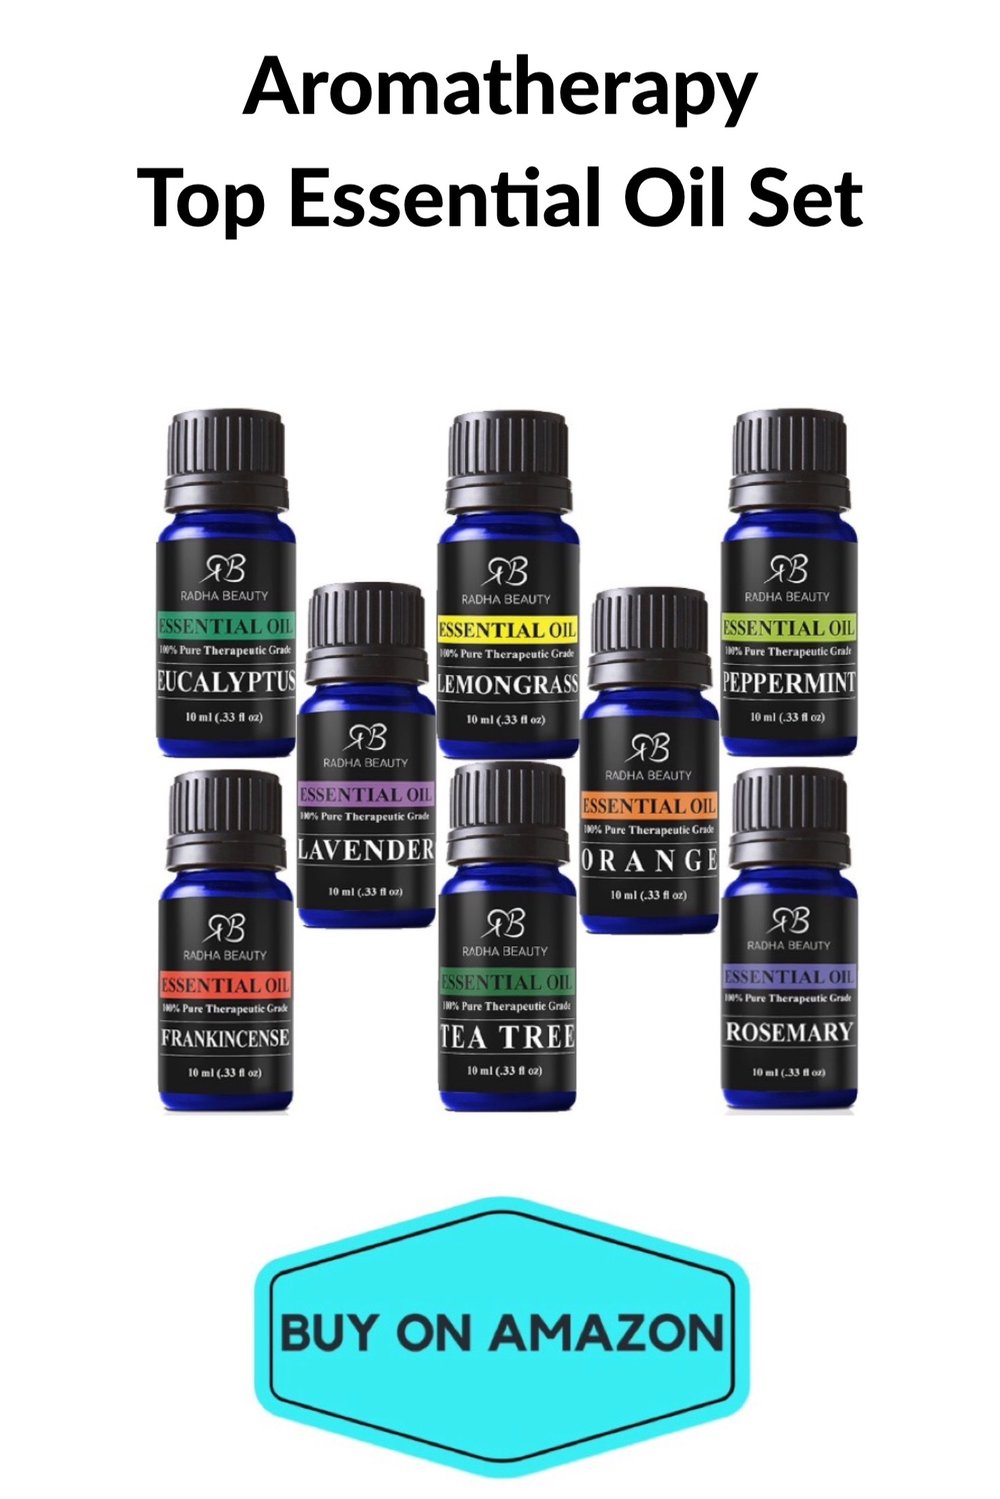 Aromatherapy Top Essential Oil Set